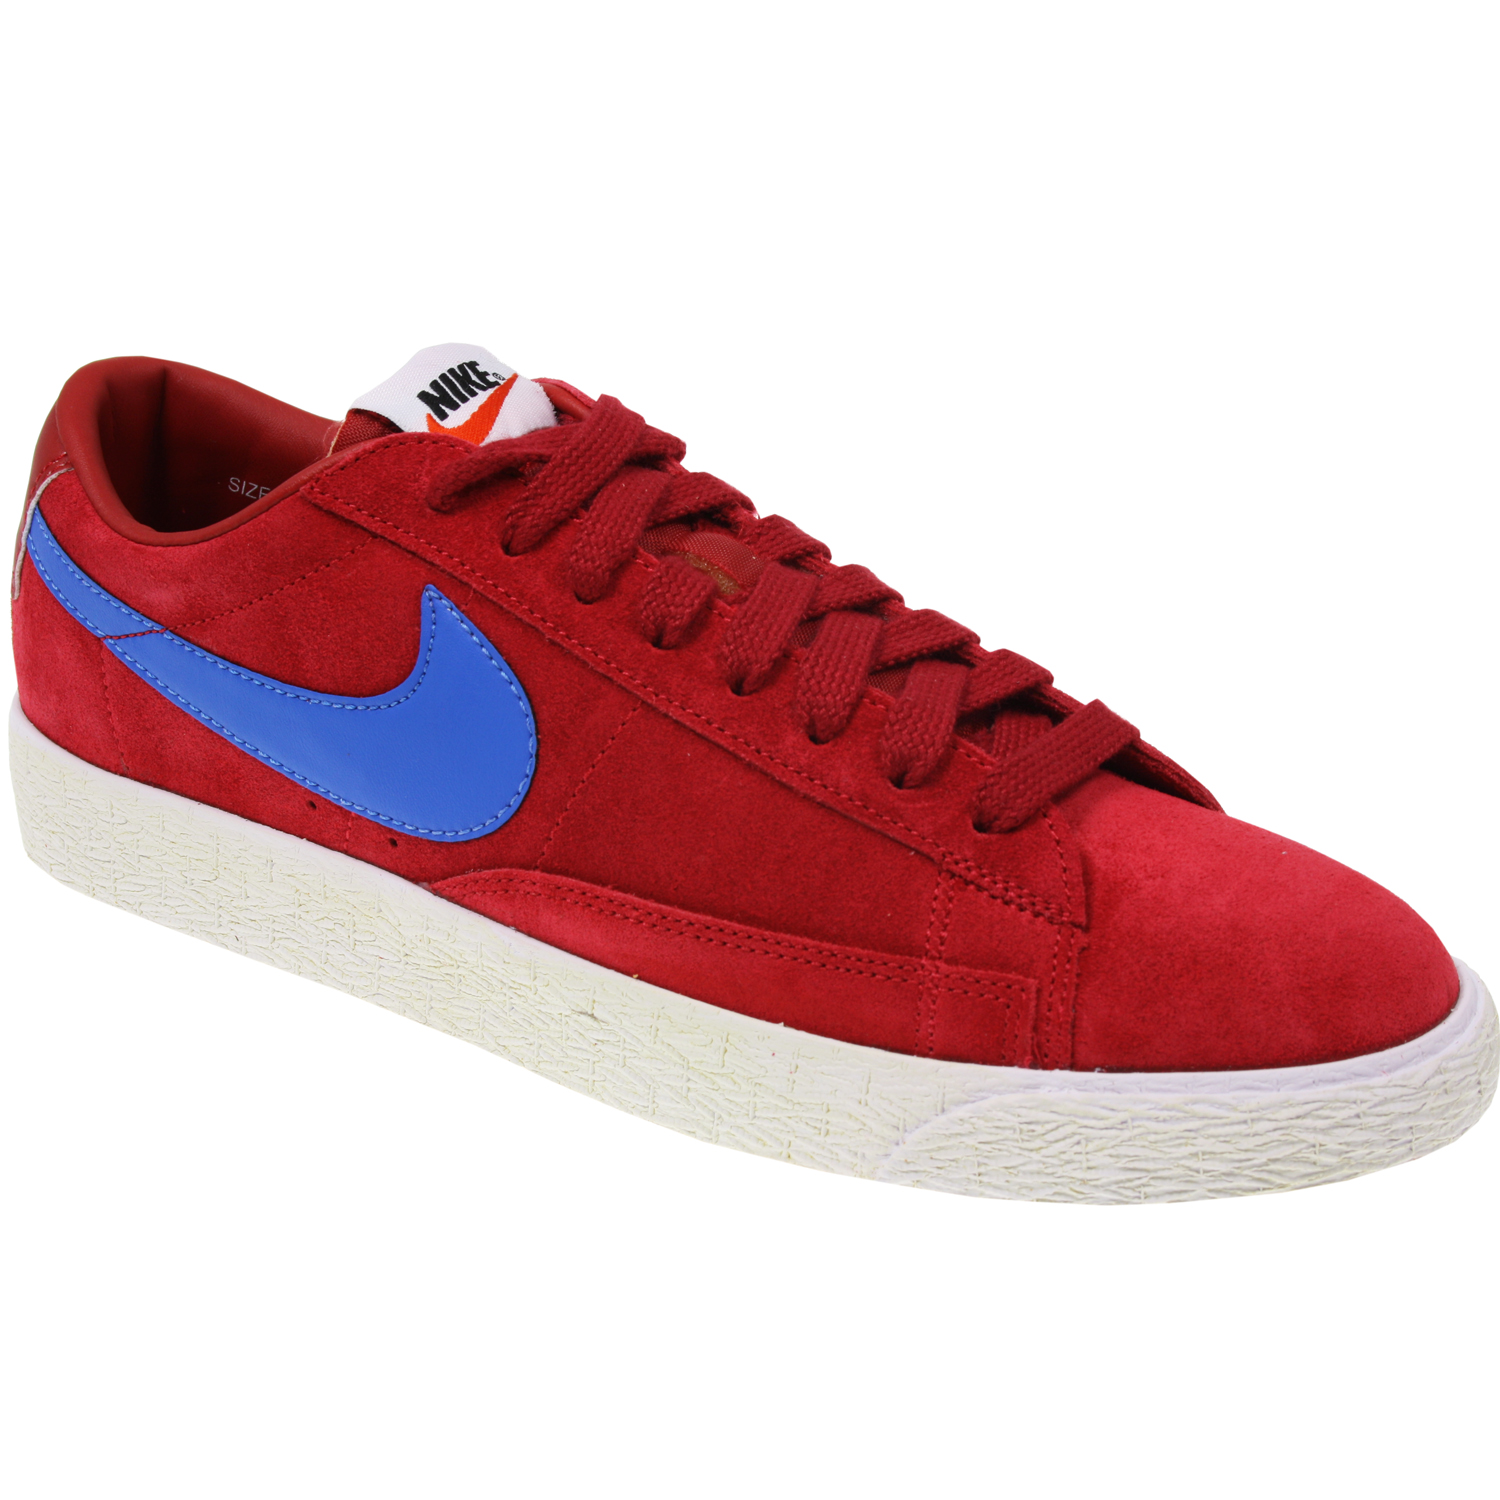 AUTHENTIC NIKE MENS BOYS NIKE BLAZER LOW PREMIUM VINTAGE RED TRAINERS SHOES SIZE | EBay